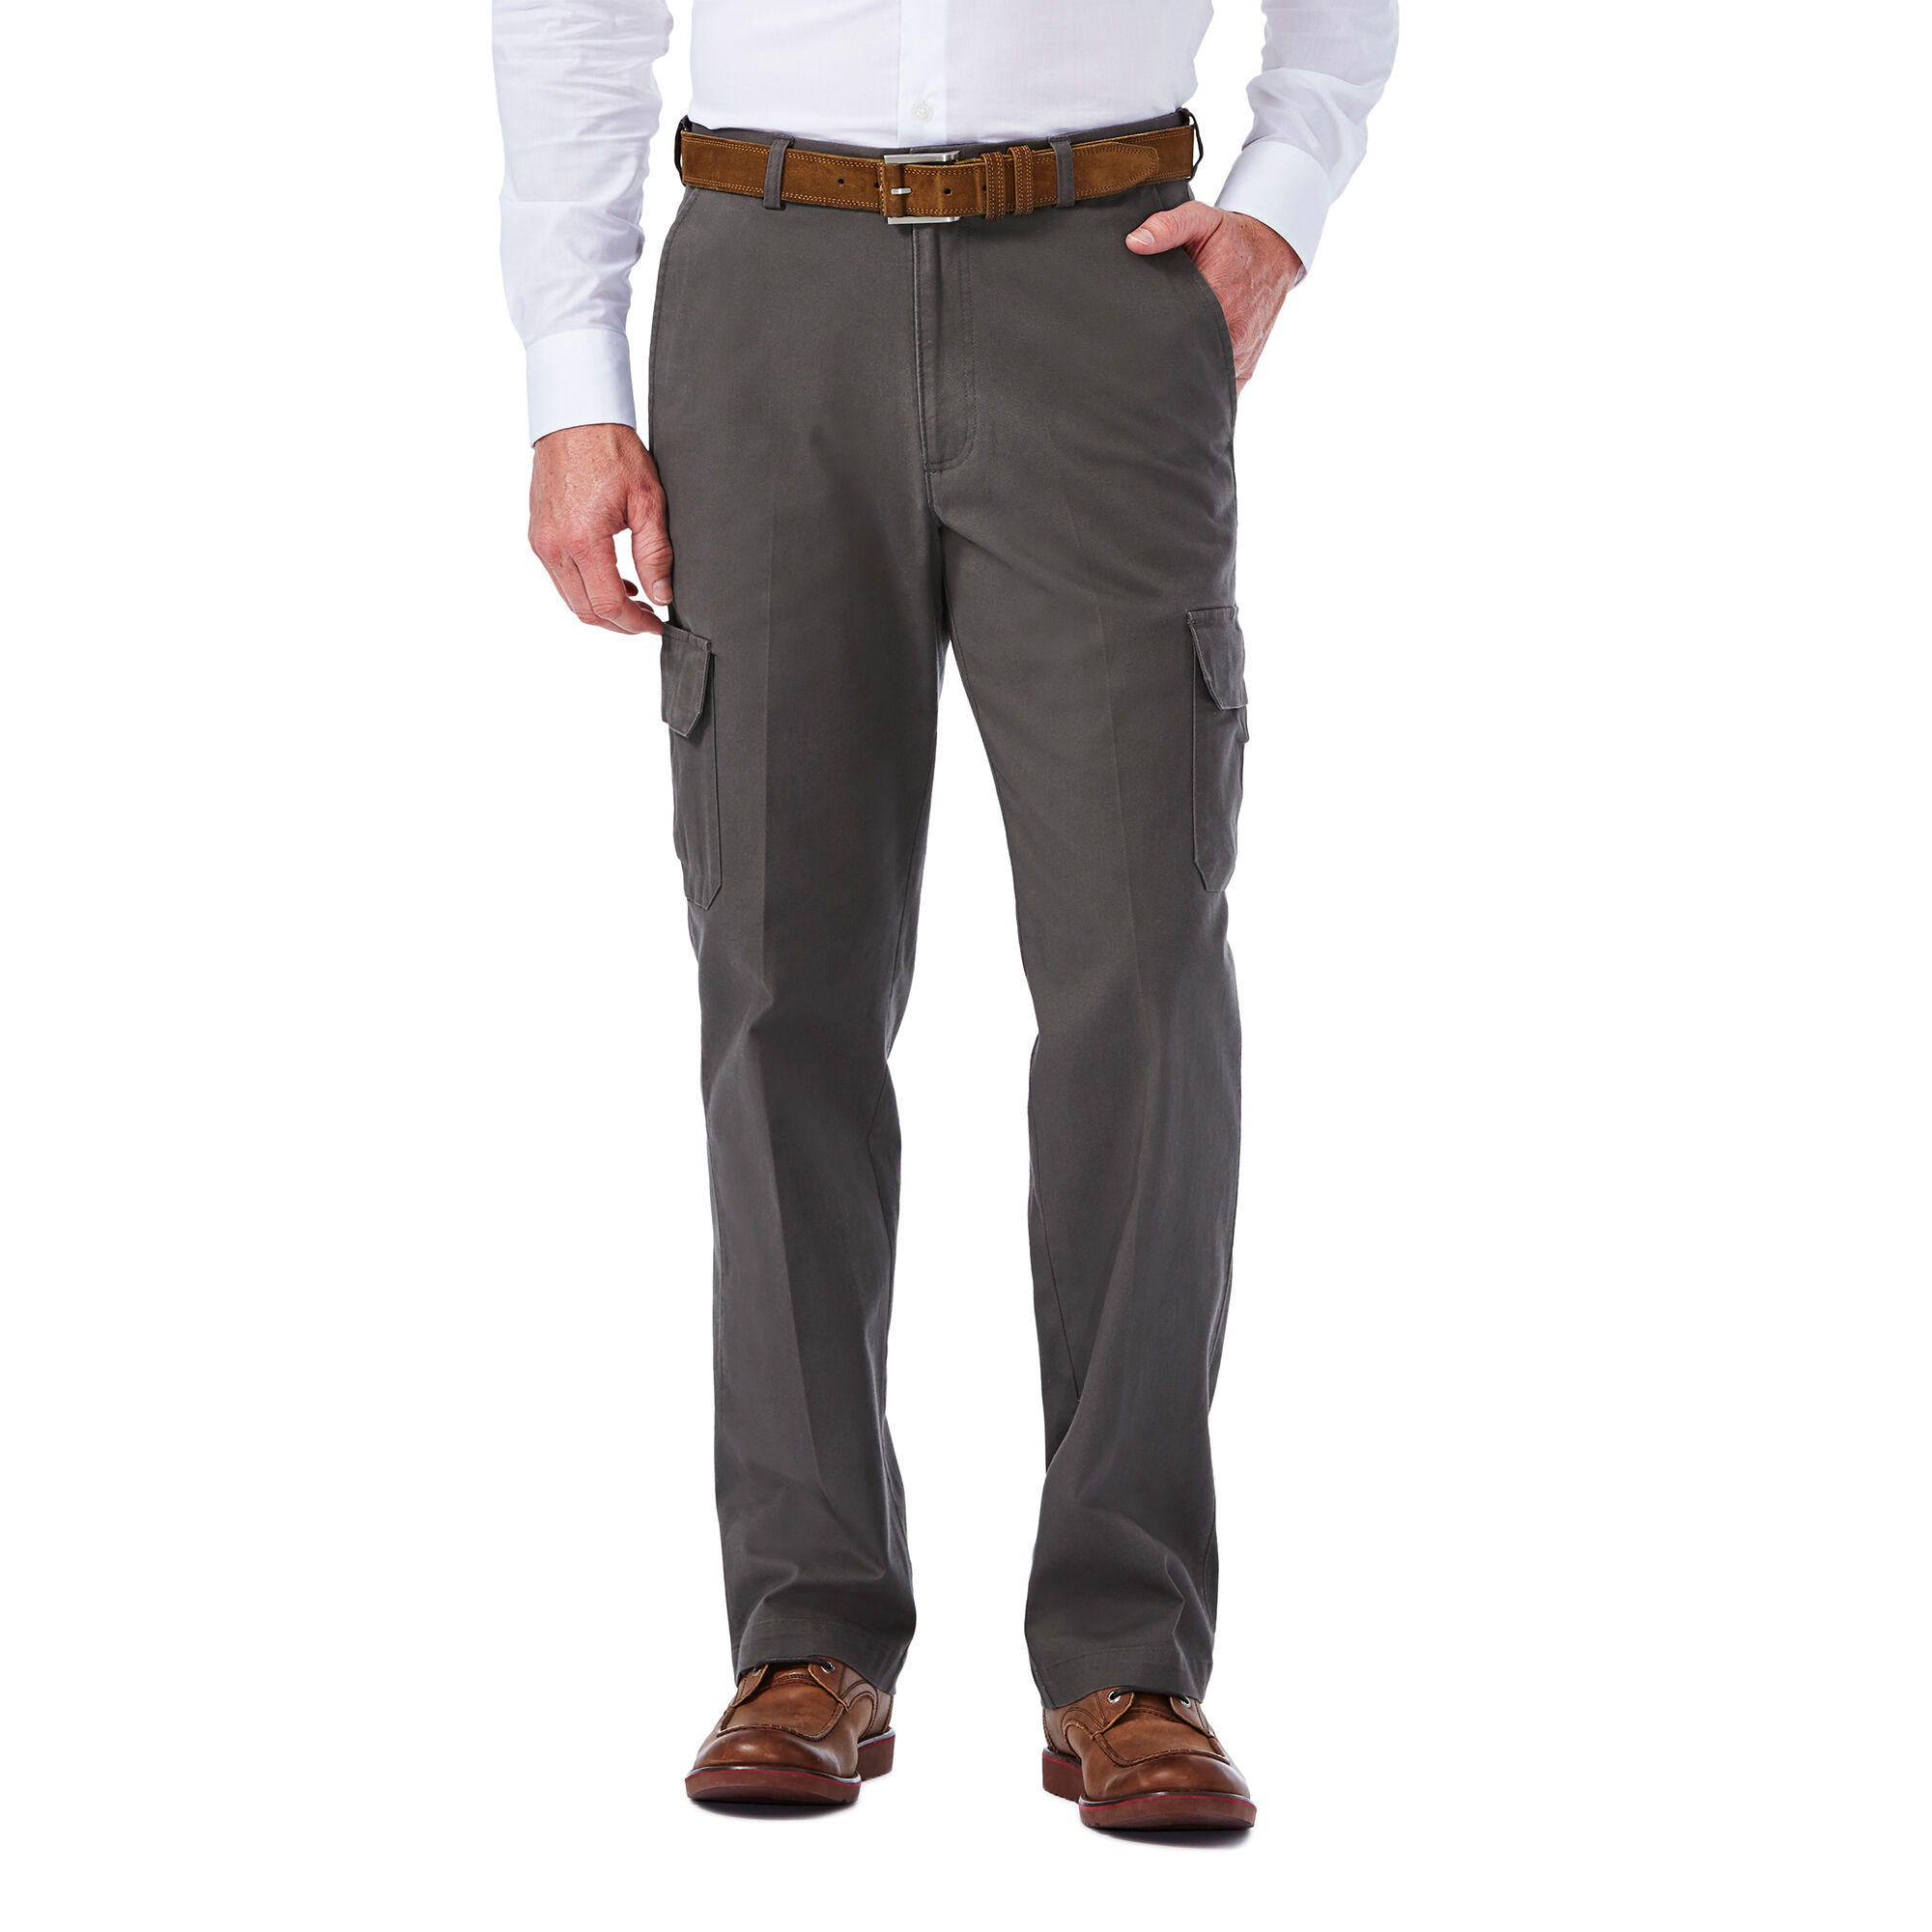 Stretch Comfort Cargo Pant Classic Fit Flat Front